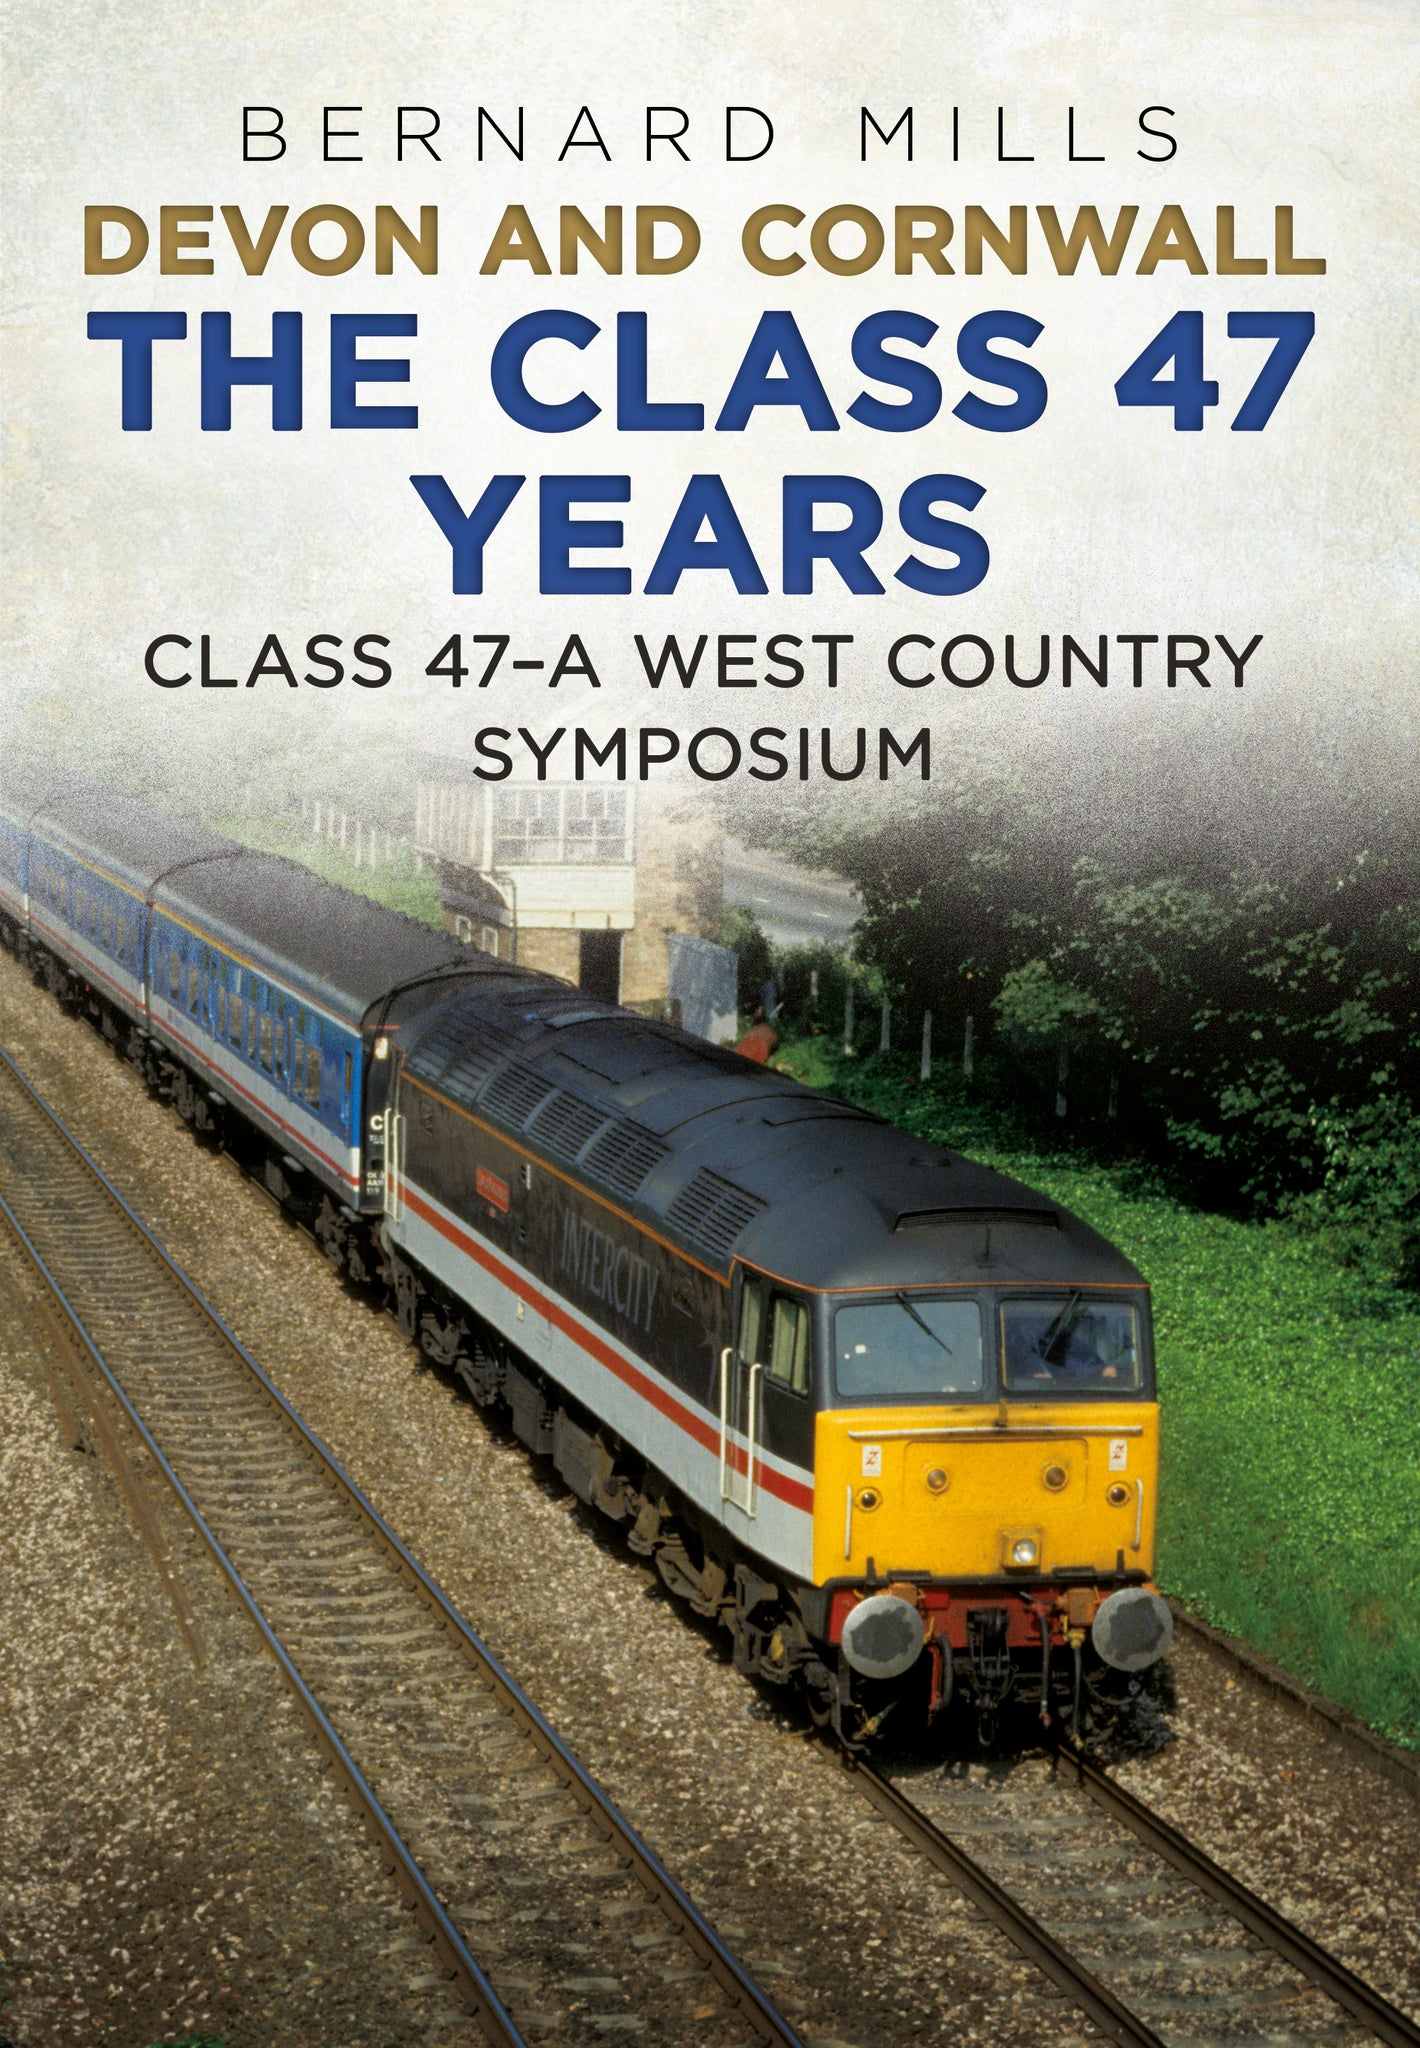 Devon and Cornwall: The Class 47 Years Class 47 - A West Country Symposium